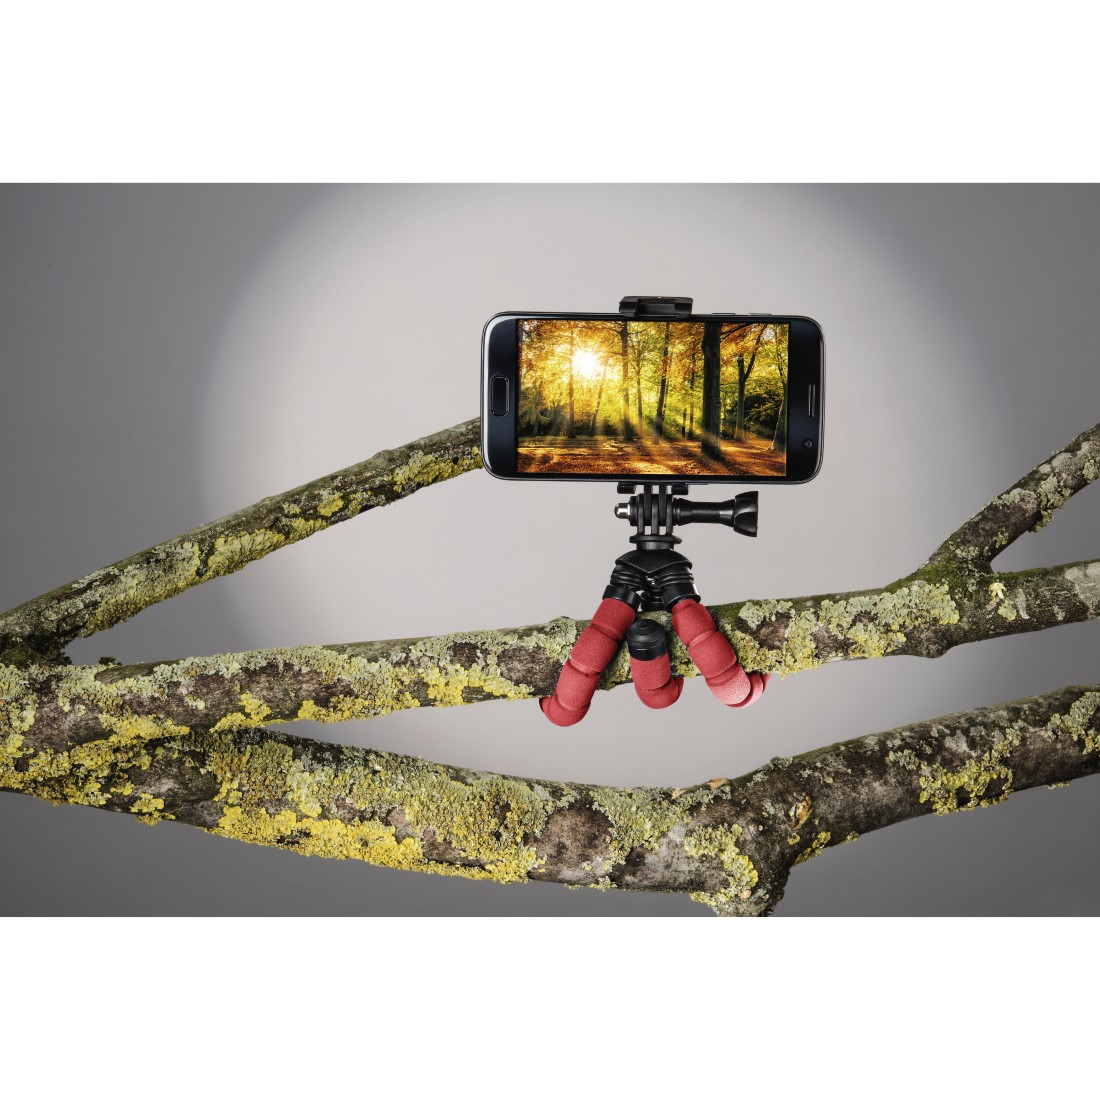 "awx2 High-Res Appliance 2 - Hama, ""Flex"" Mini-Tripod for Smartphone and GoPro, 14 cm, red"